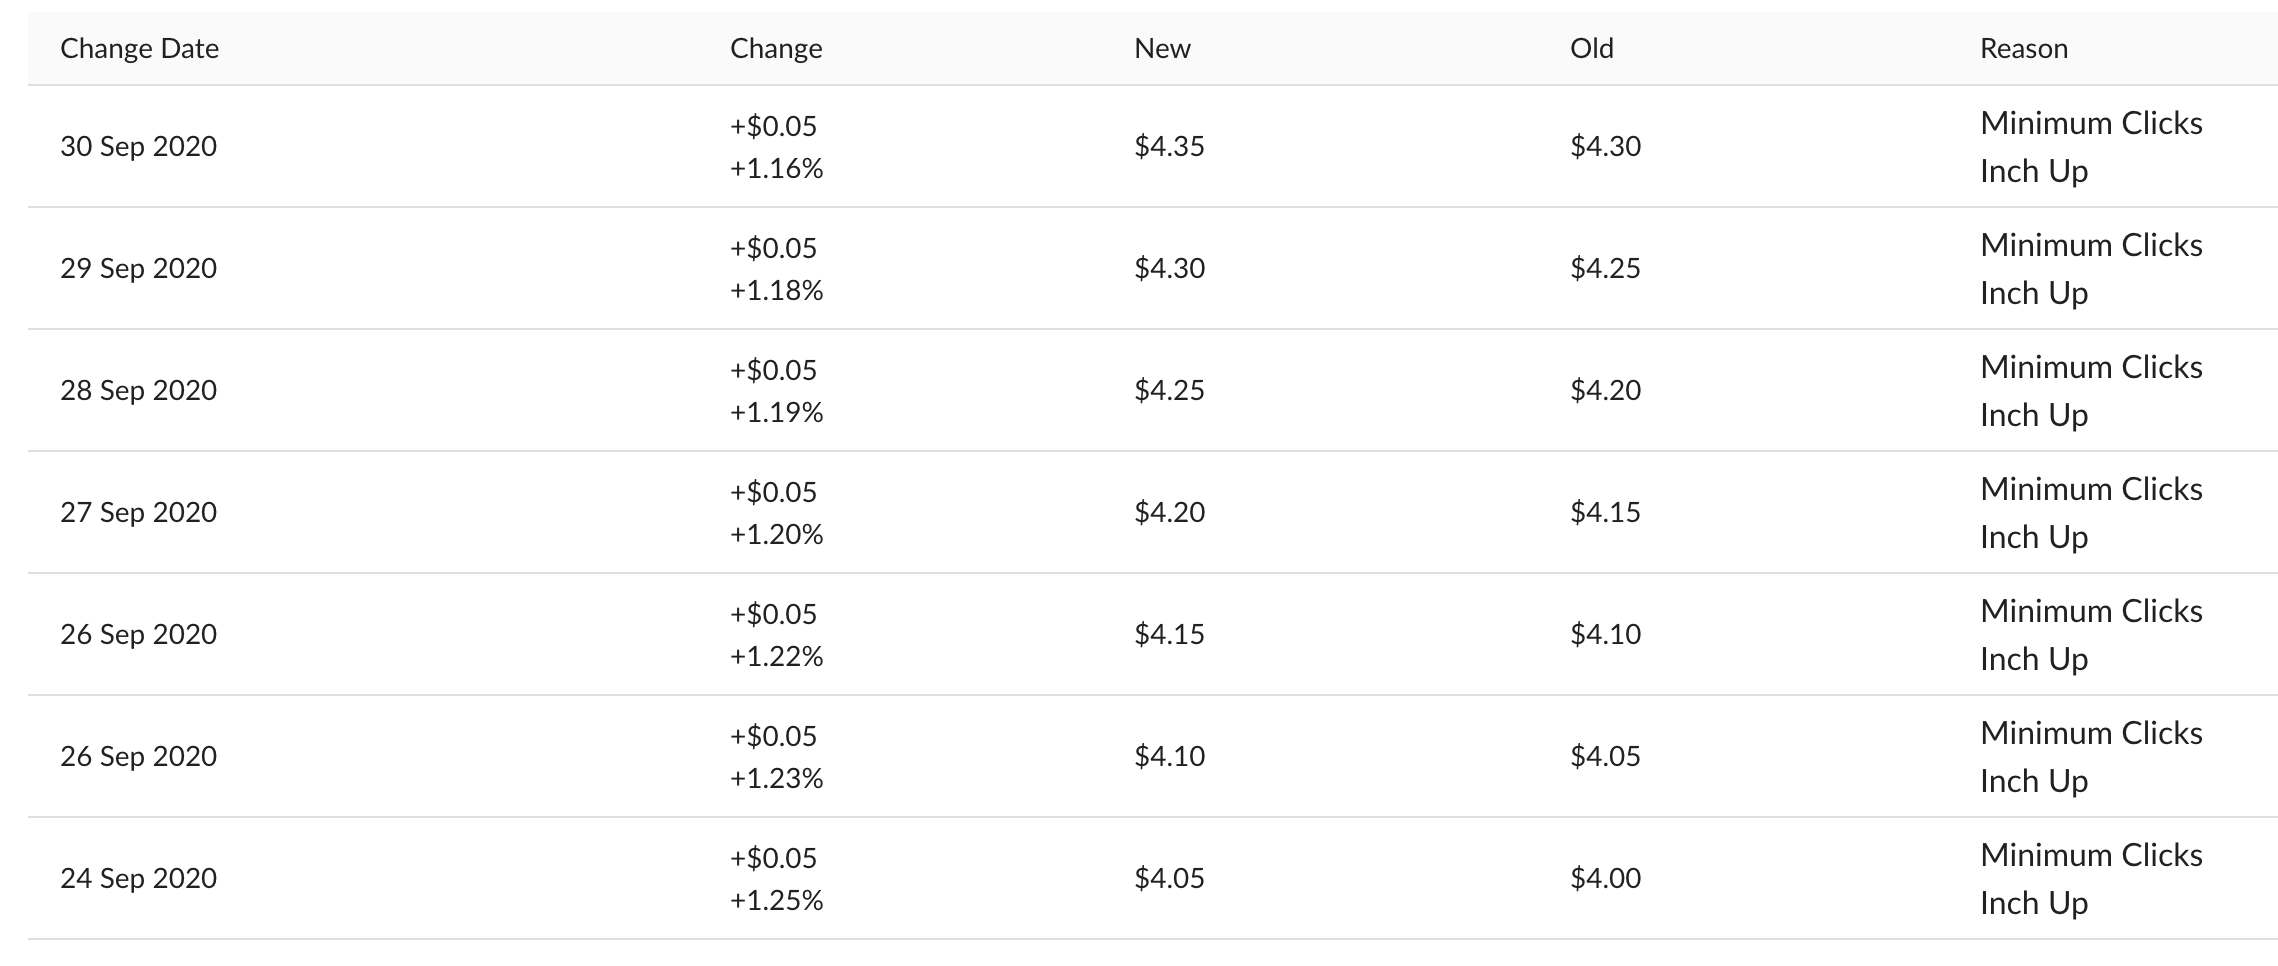 Ad Badger's Bid Change History showing historical bid changes for a specific target